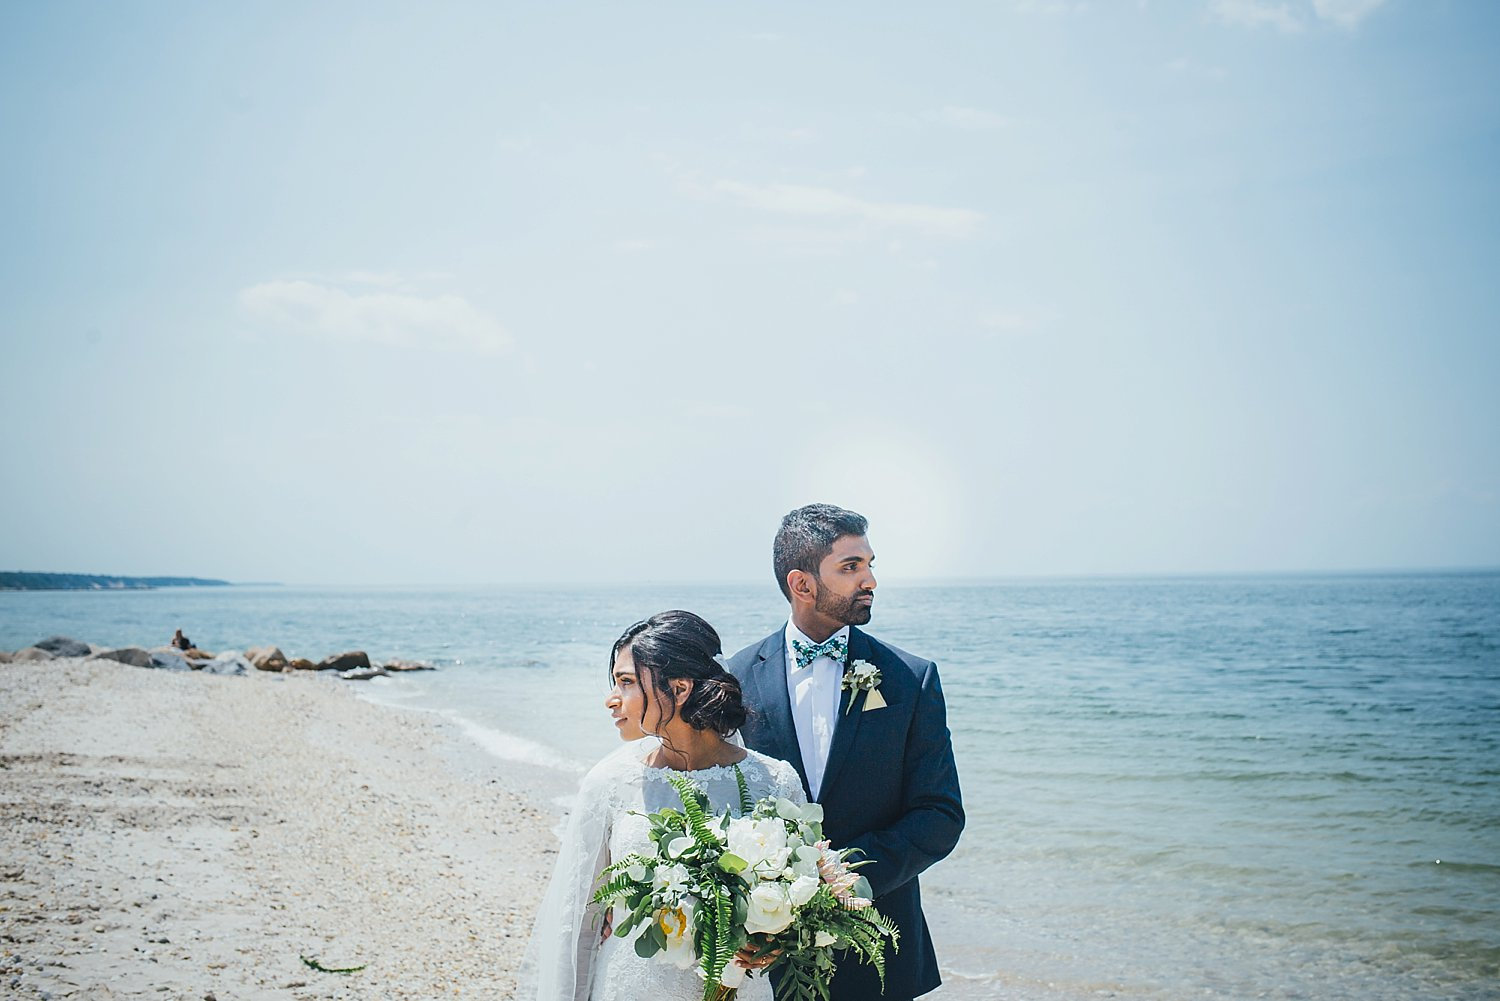 nyc-wedding-photography-nj-tri-state-cinematography-intothestory-by-moo-jae_0327.jpg